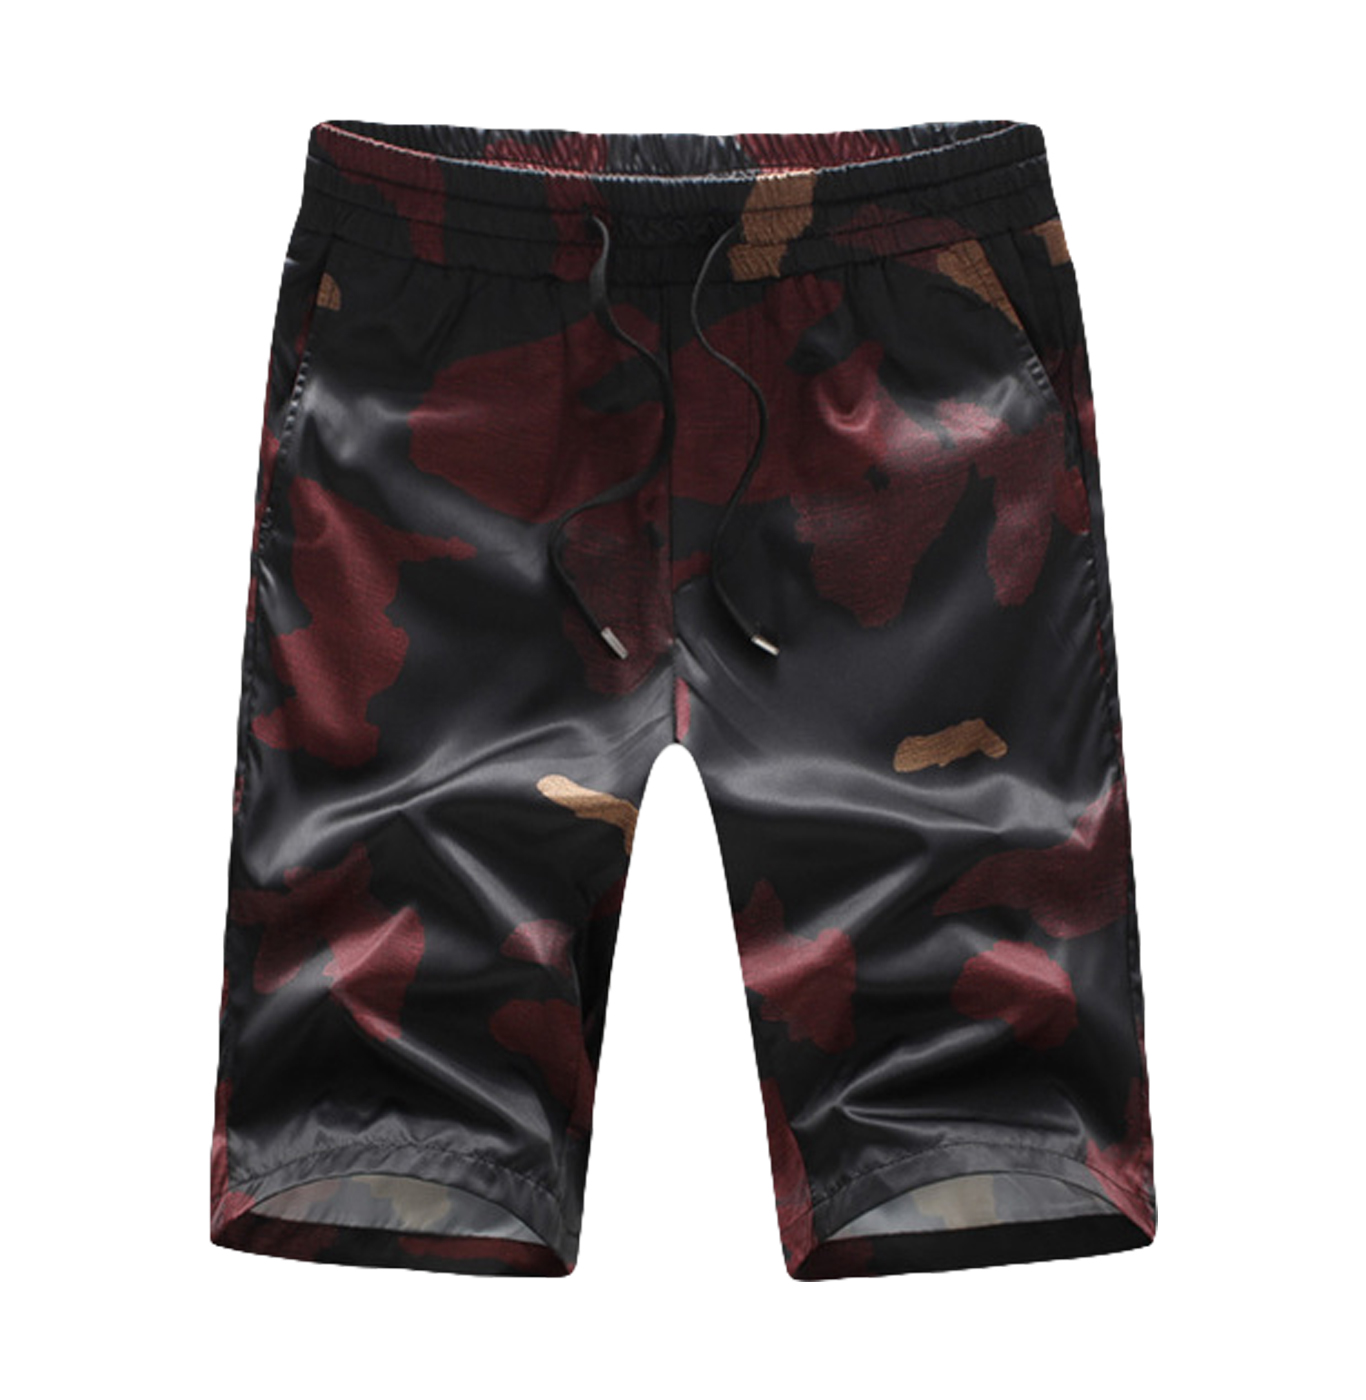 Casual burgundy mens camouflage print leichte shorts